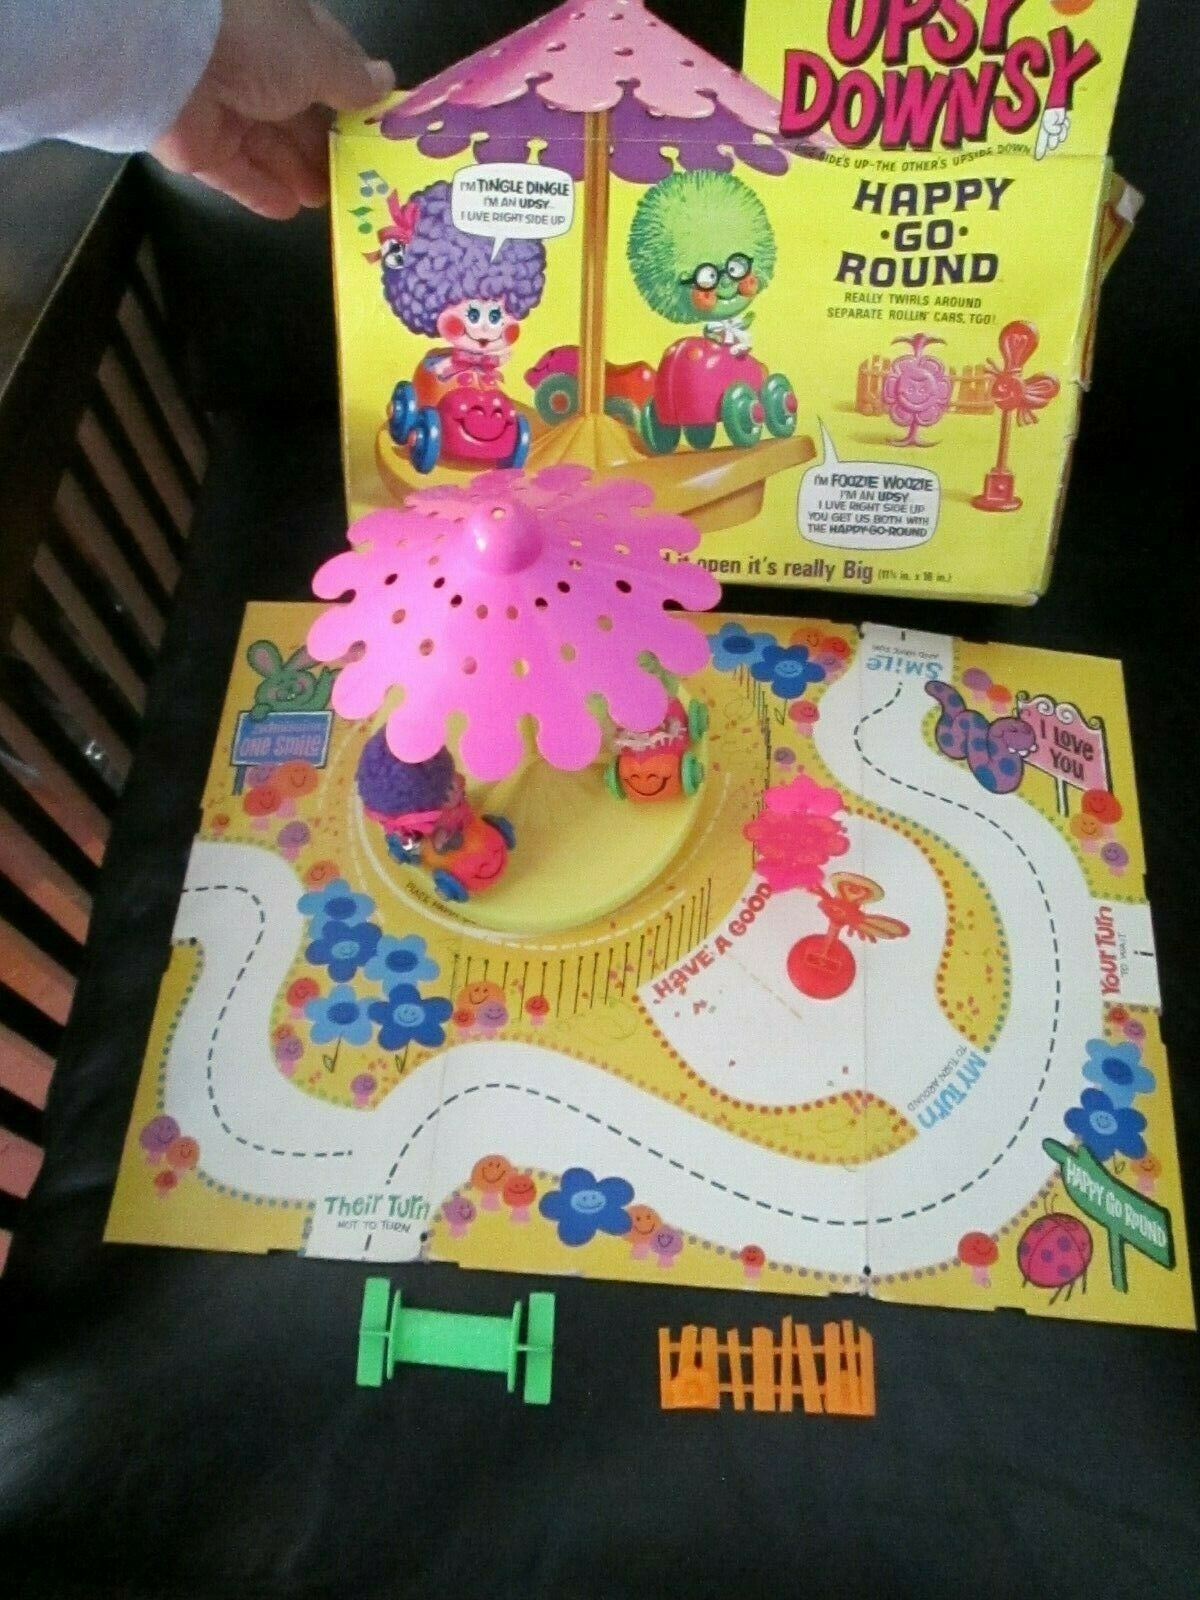 Jahr Rare Upsy Downsy Large Playlands Play Board & Merry Happy Go Round Set